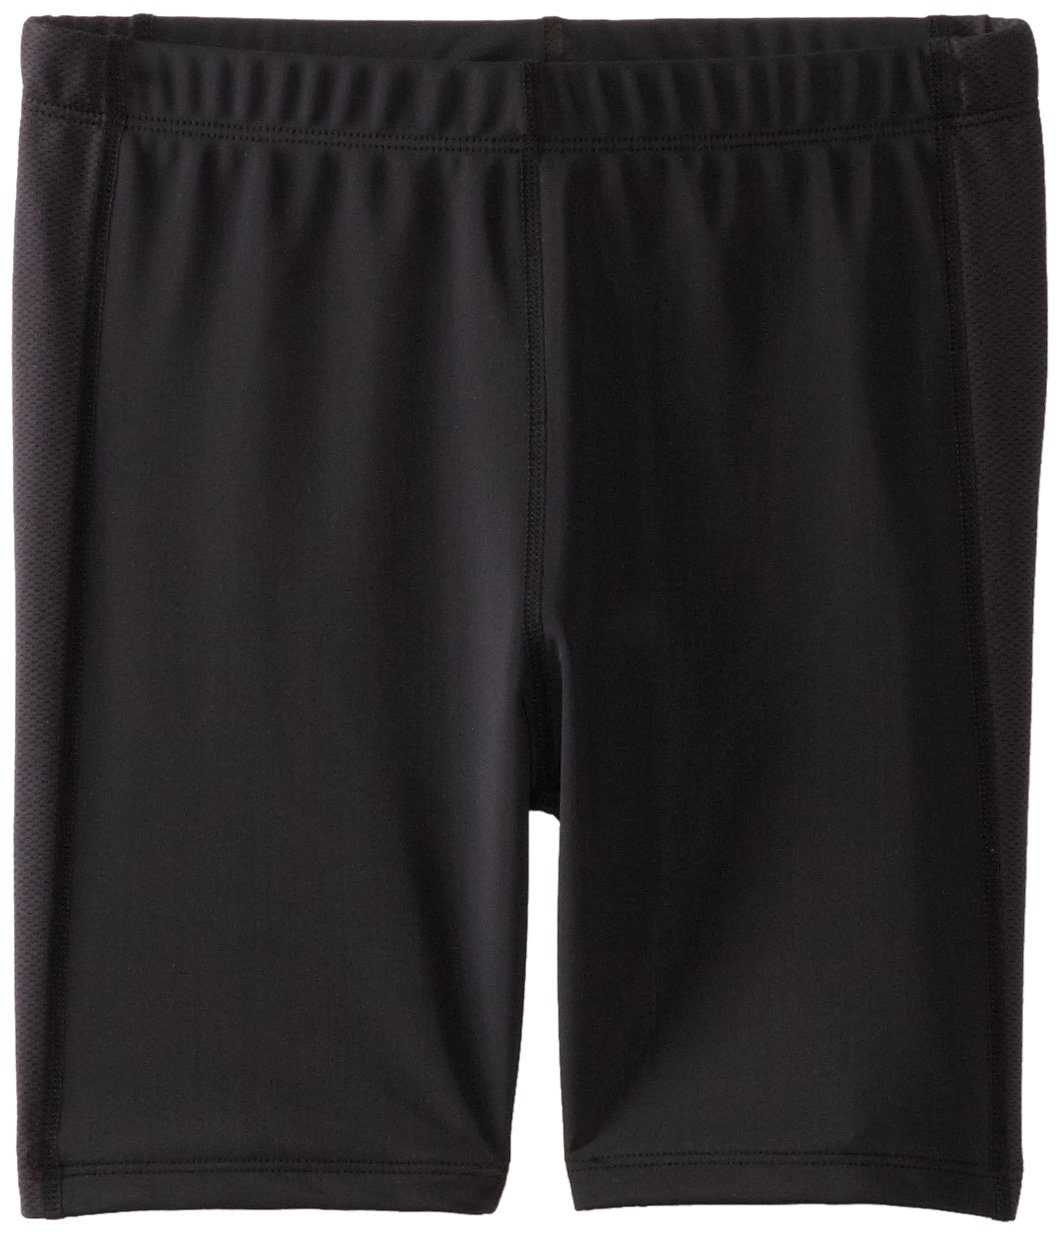 Dragonwing girlgear Girls Compression Shorts for Workout, Performance Spandex with 5.5 Inch Inseam